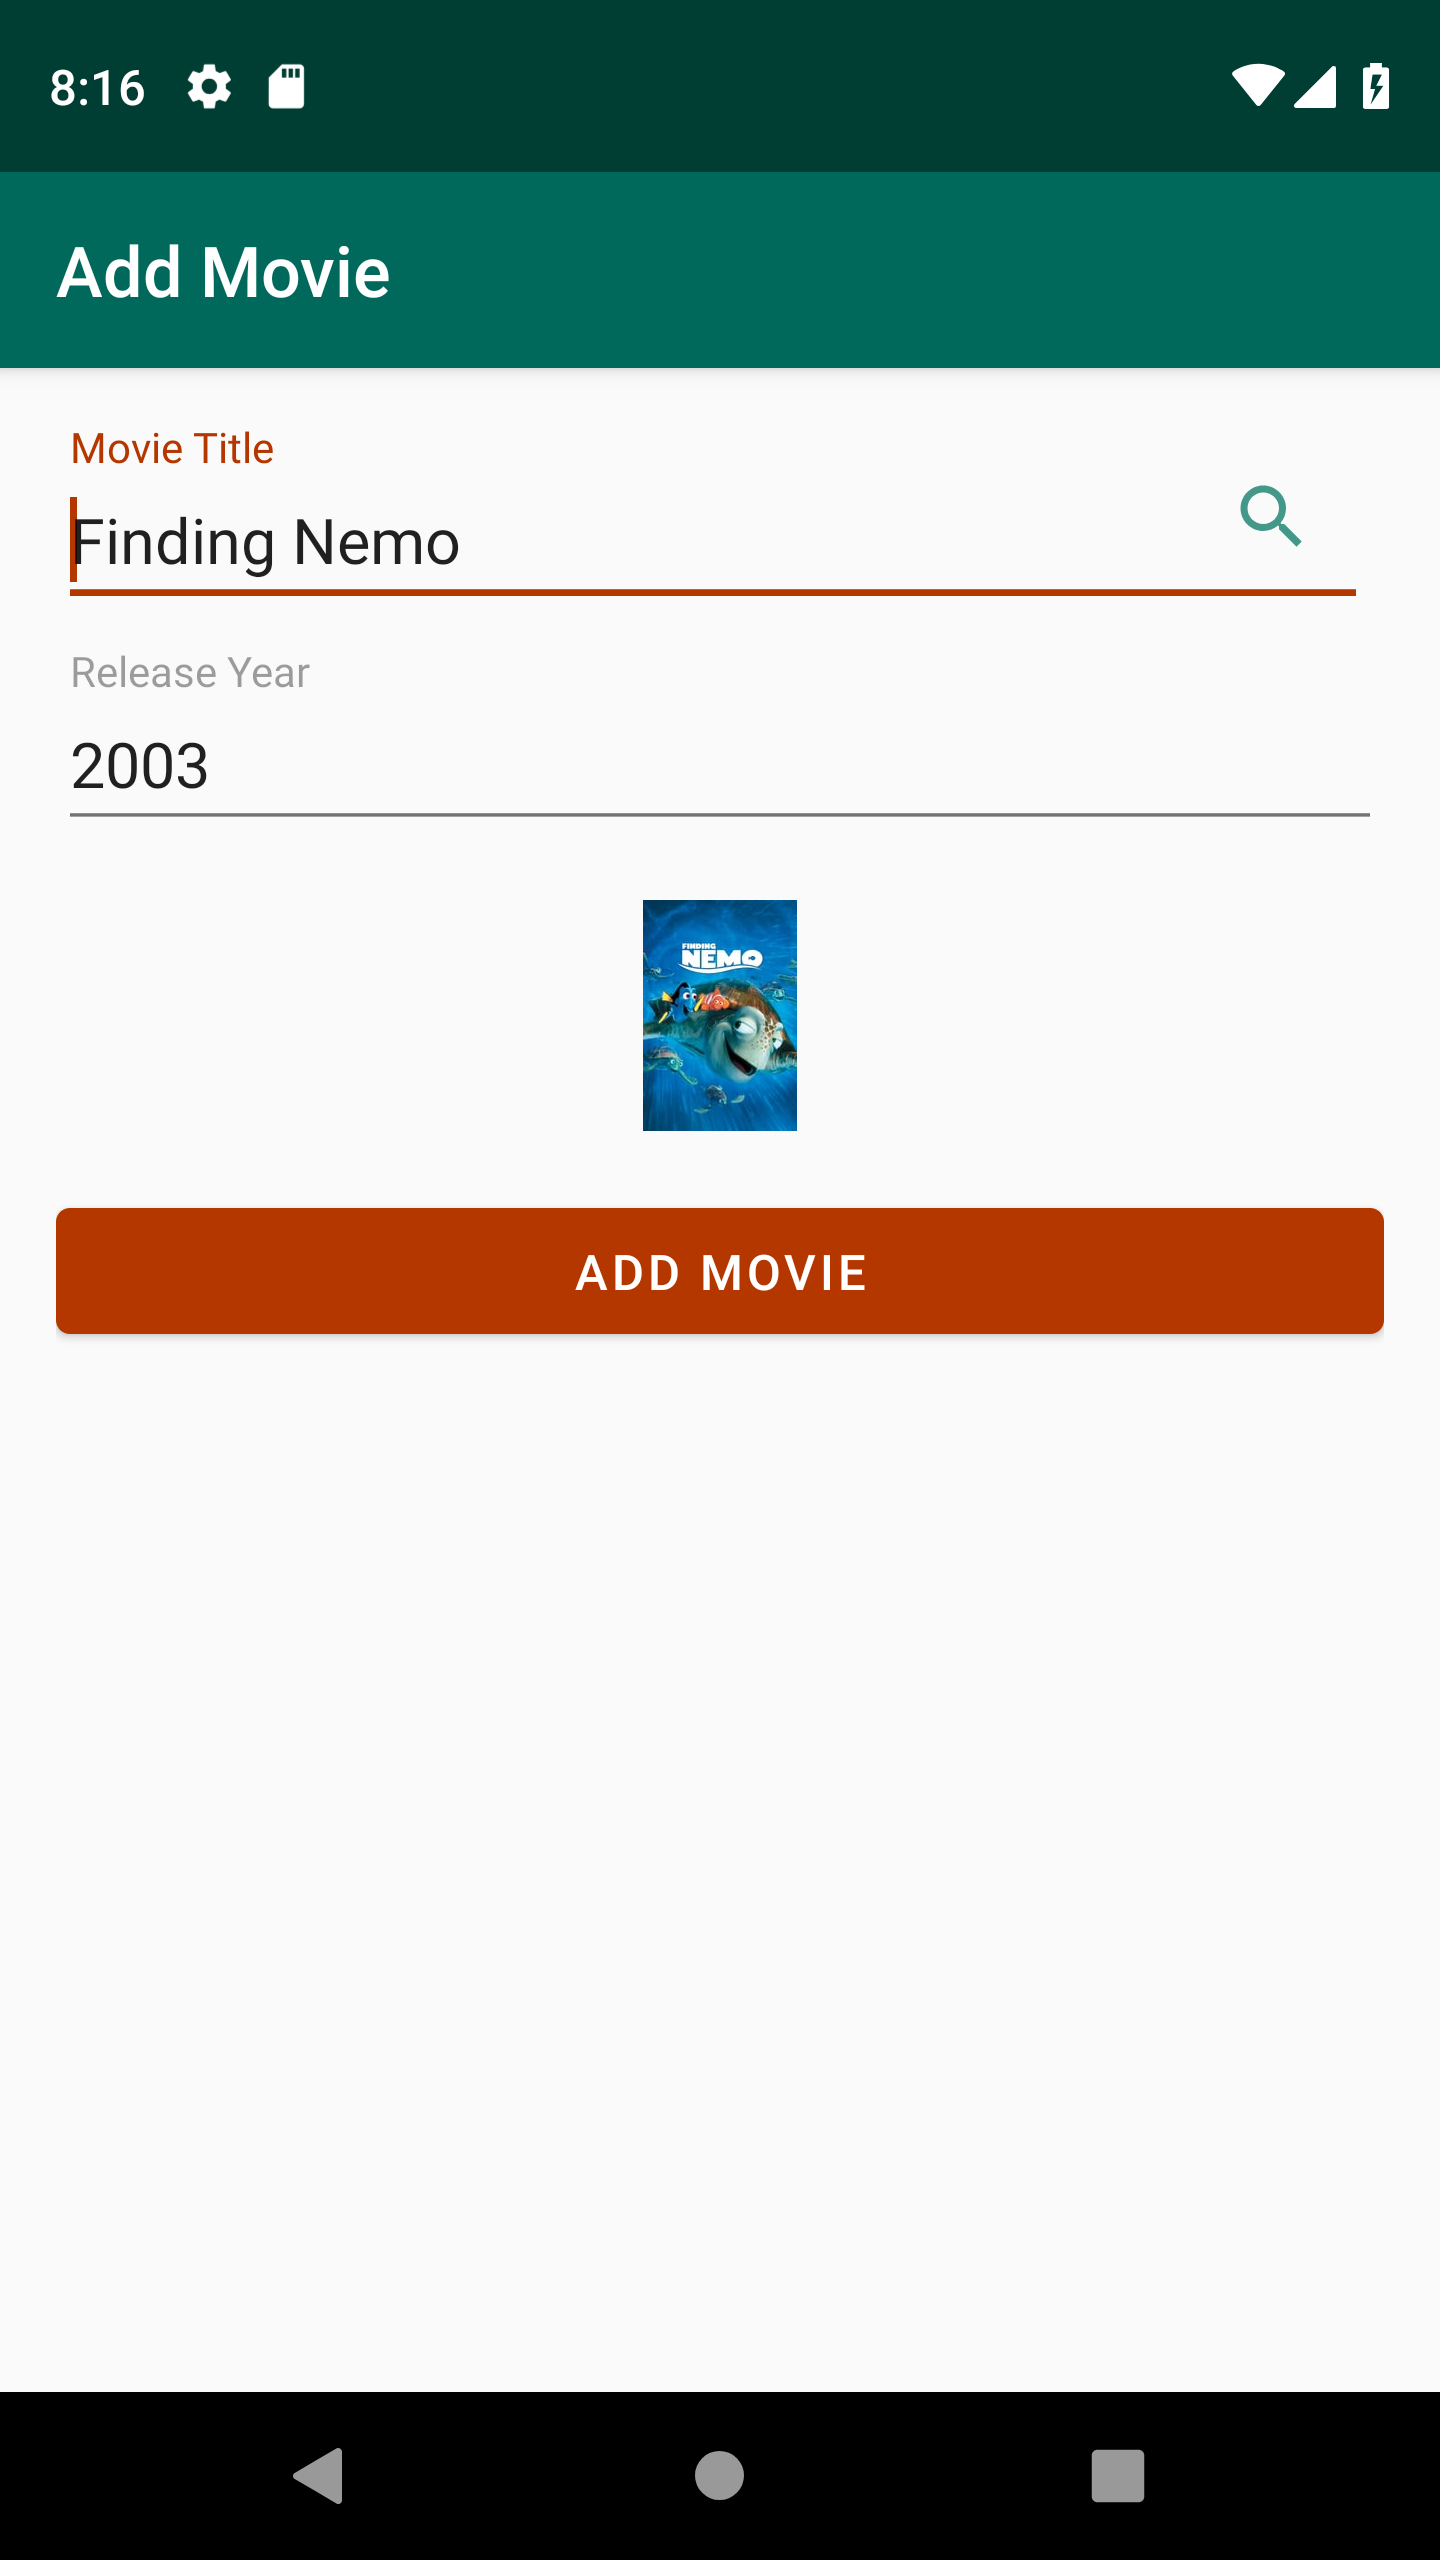 Add movie screen of sample app with the result from the search.